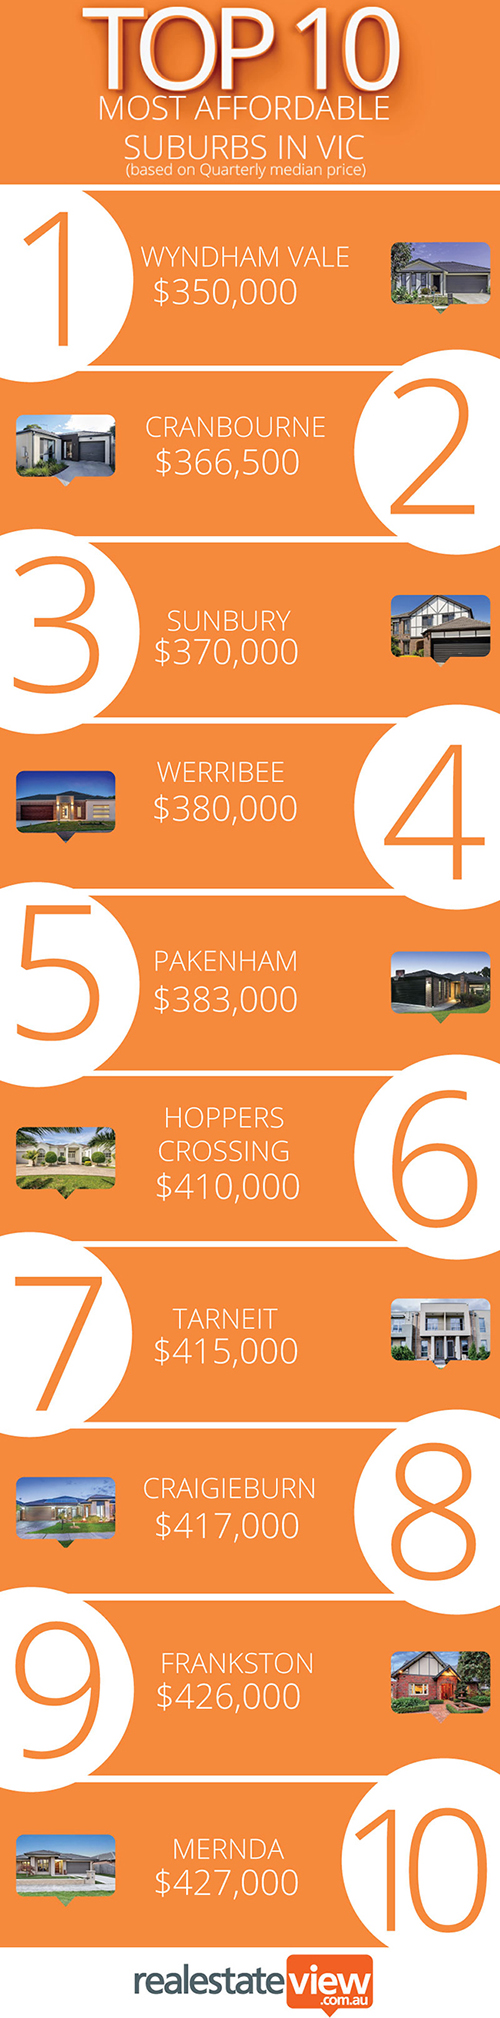 Top10-most-affordableVIC